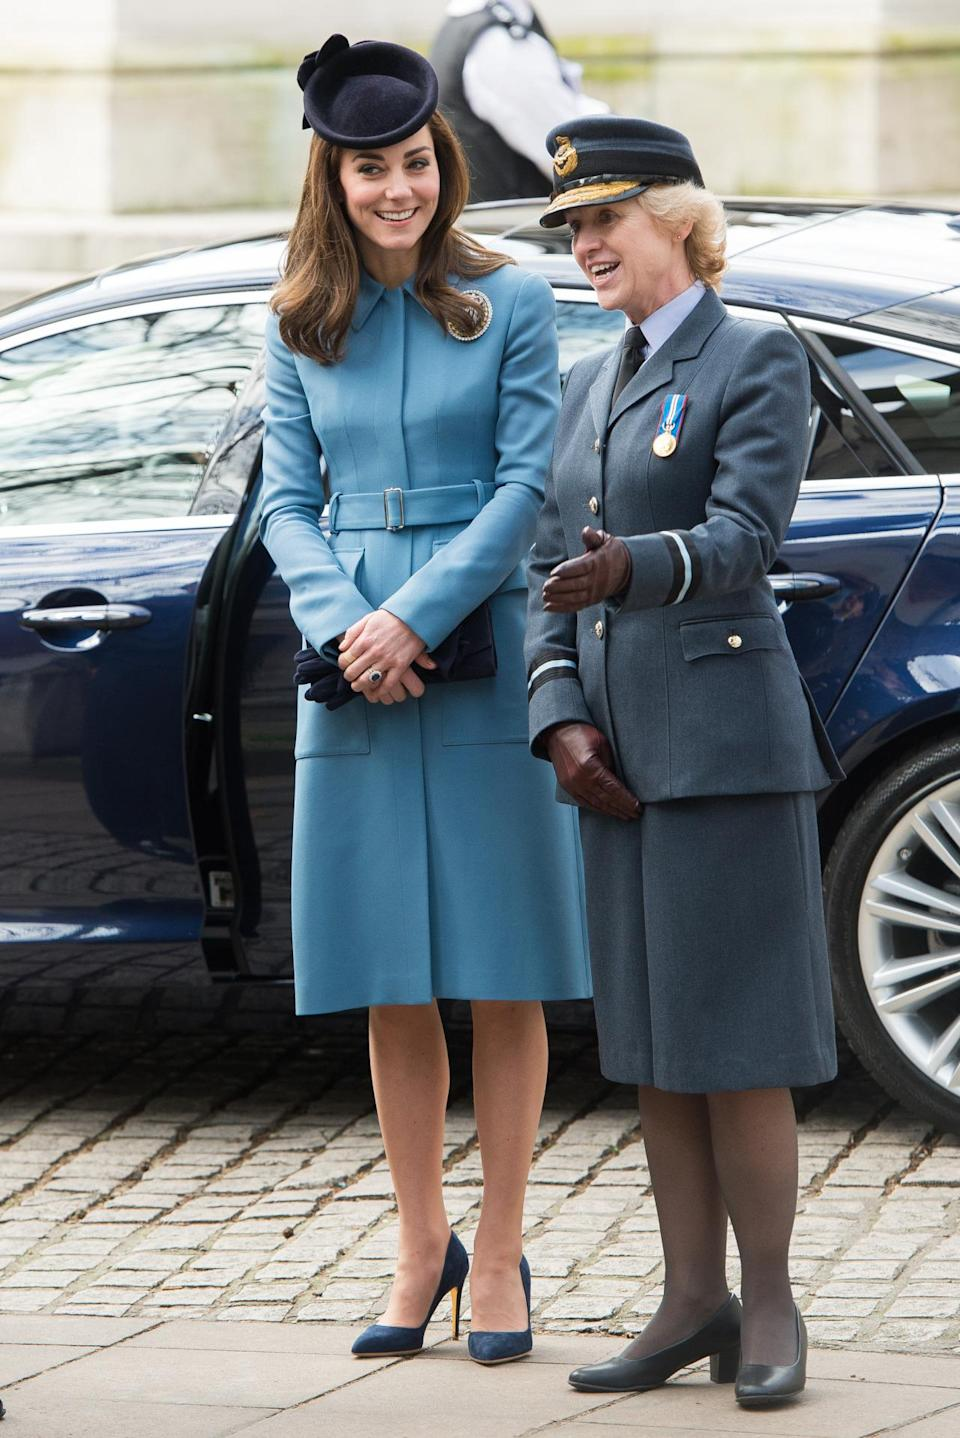 <p>Kate chose another bespoke Alexander McQueen outfit for an RAF Air Cadets event in the form of a blue belted coat. She carried a Stuart Weitzman clutch and accessorised with Rupert Sanderson suede heels and a Lock & Co hat. </p><p><i>[Photo: PA]</i></p>